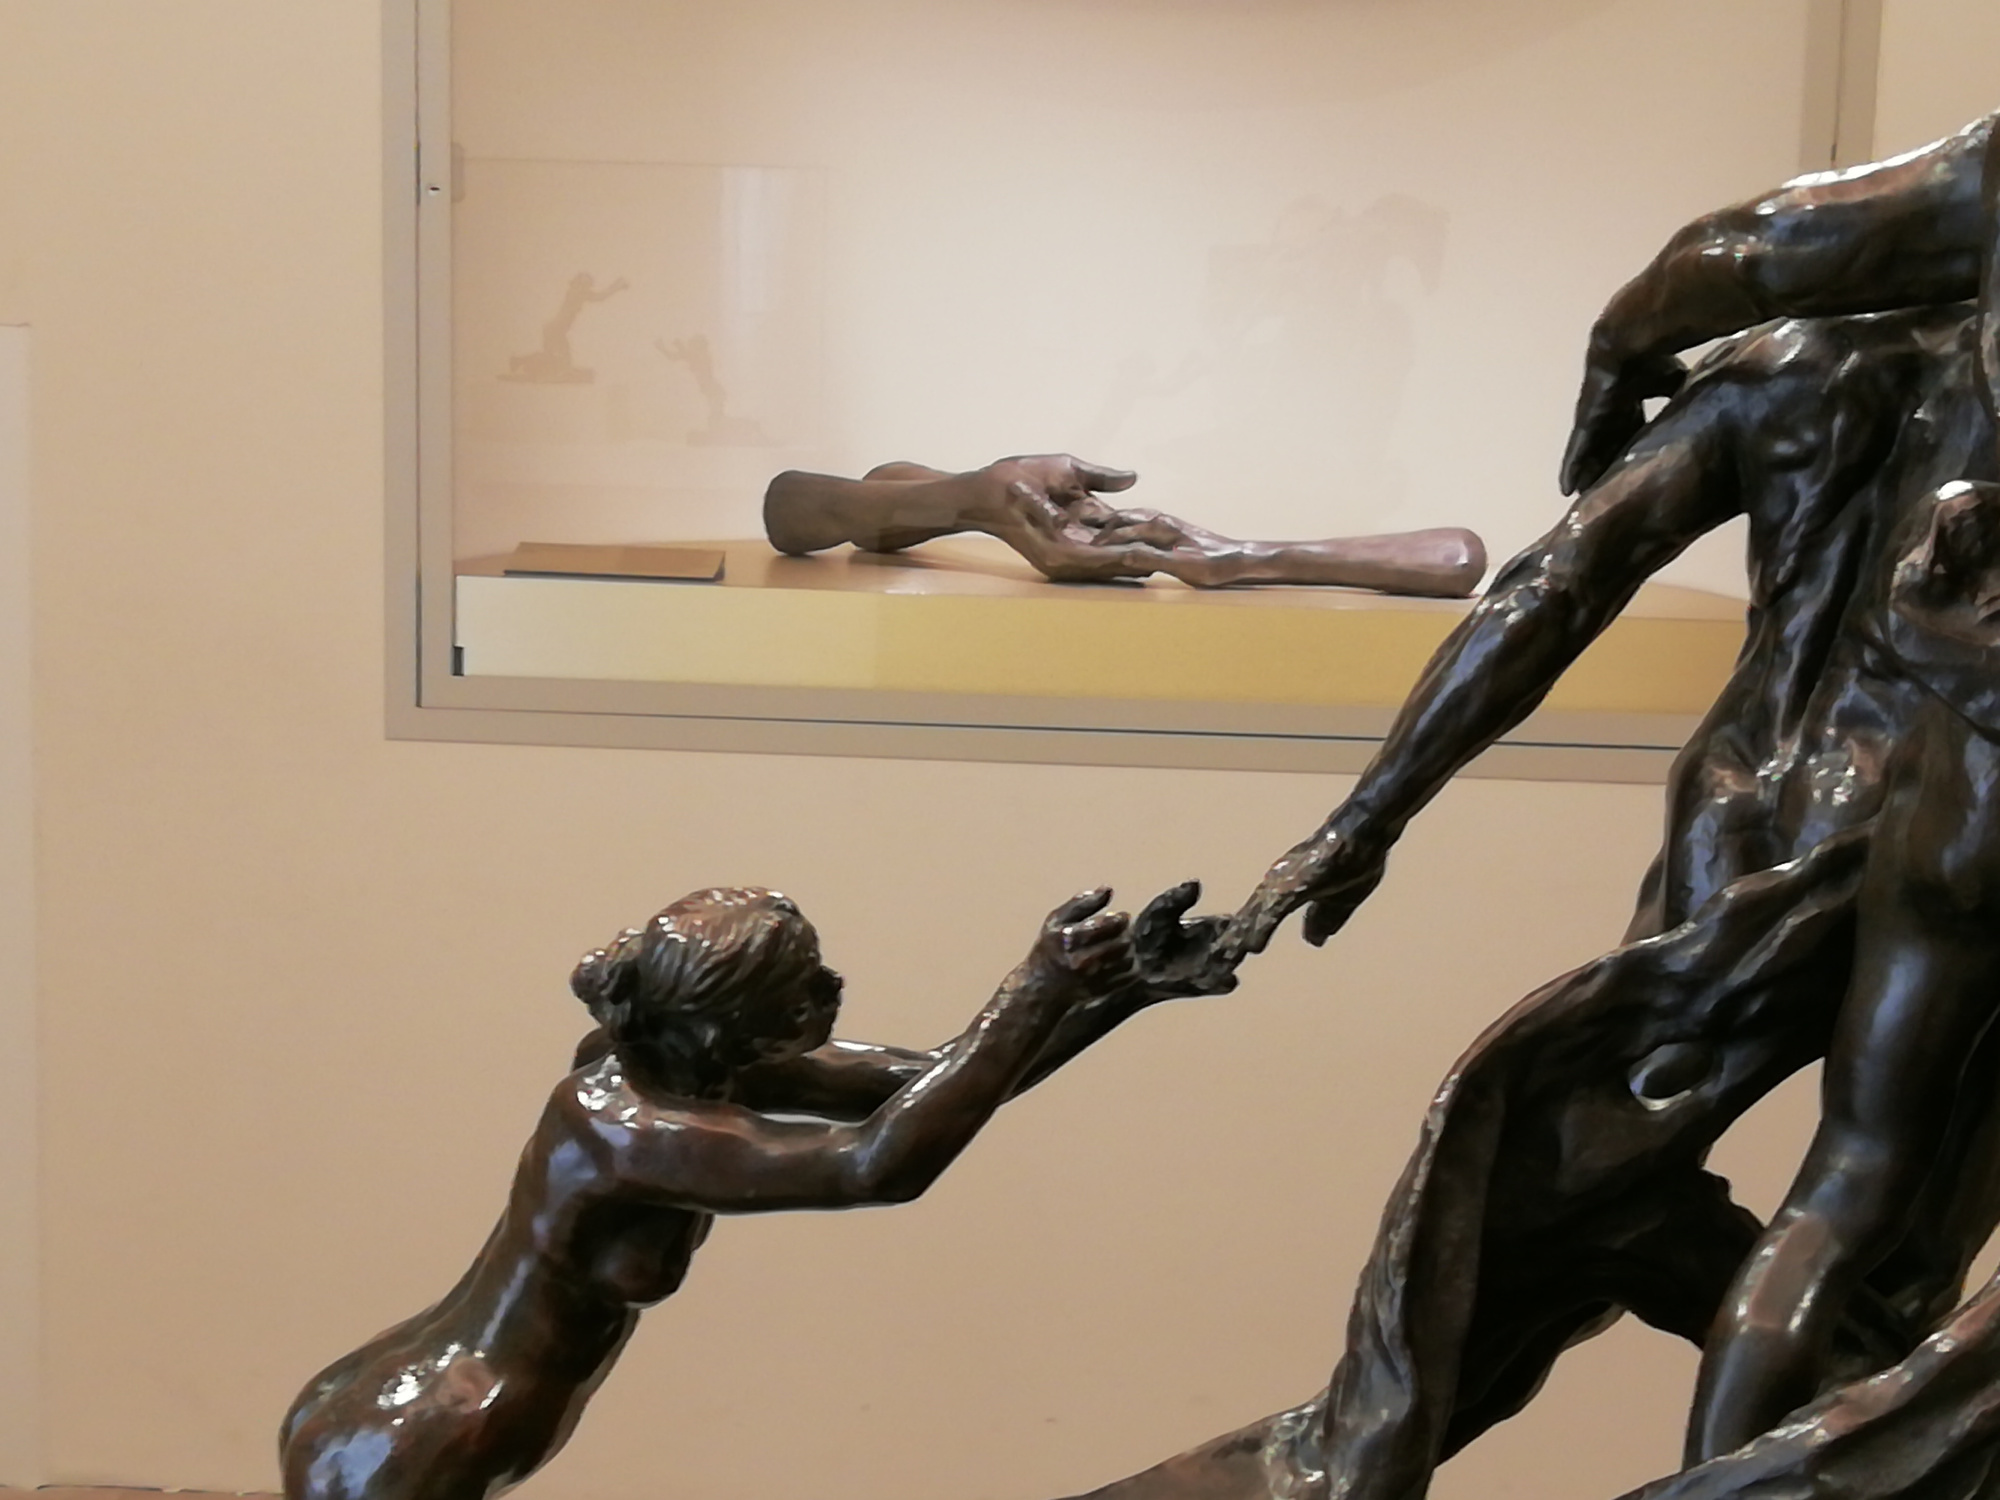 Detail van L'Âge mûr van Camille Claudel en The Welcoming Hands van Louise Bourgeois., musée Camille Claudel/photo Marco Illuminati / © The Easton Foundation/ADAGP, Paris 2019